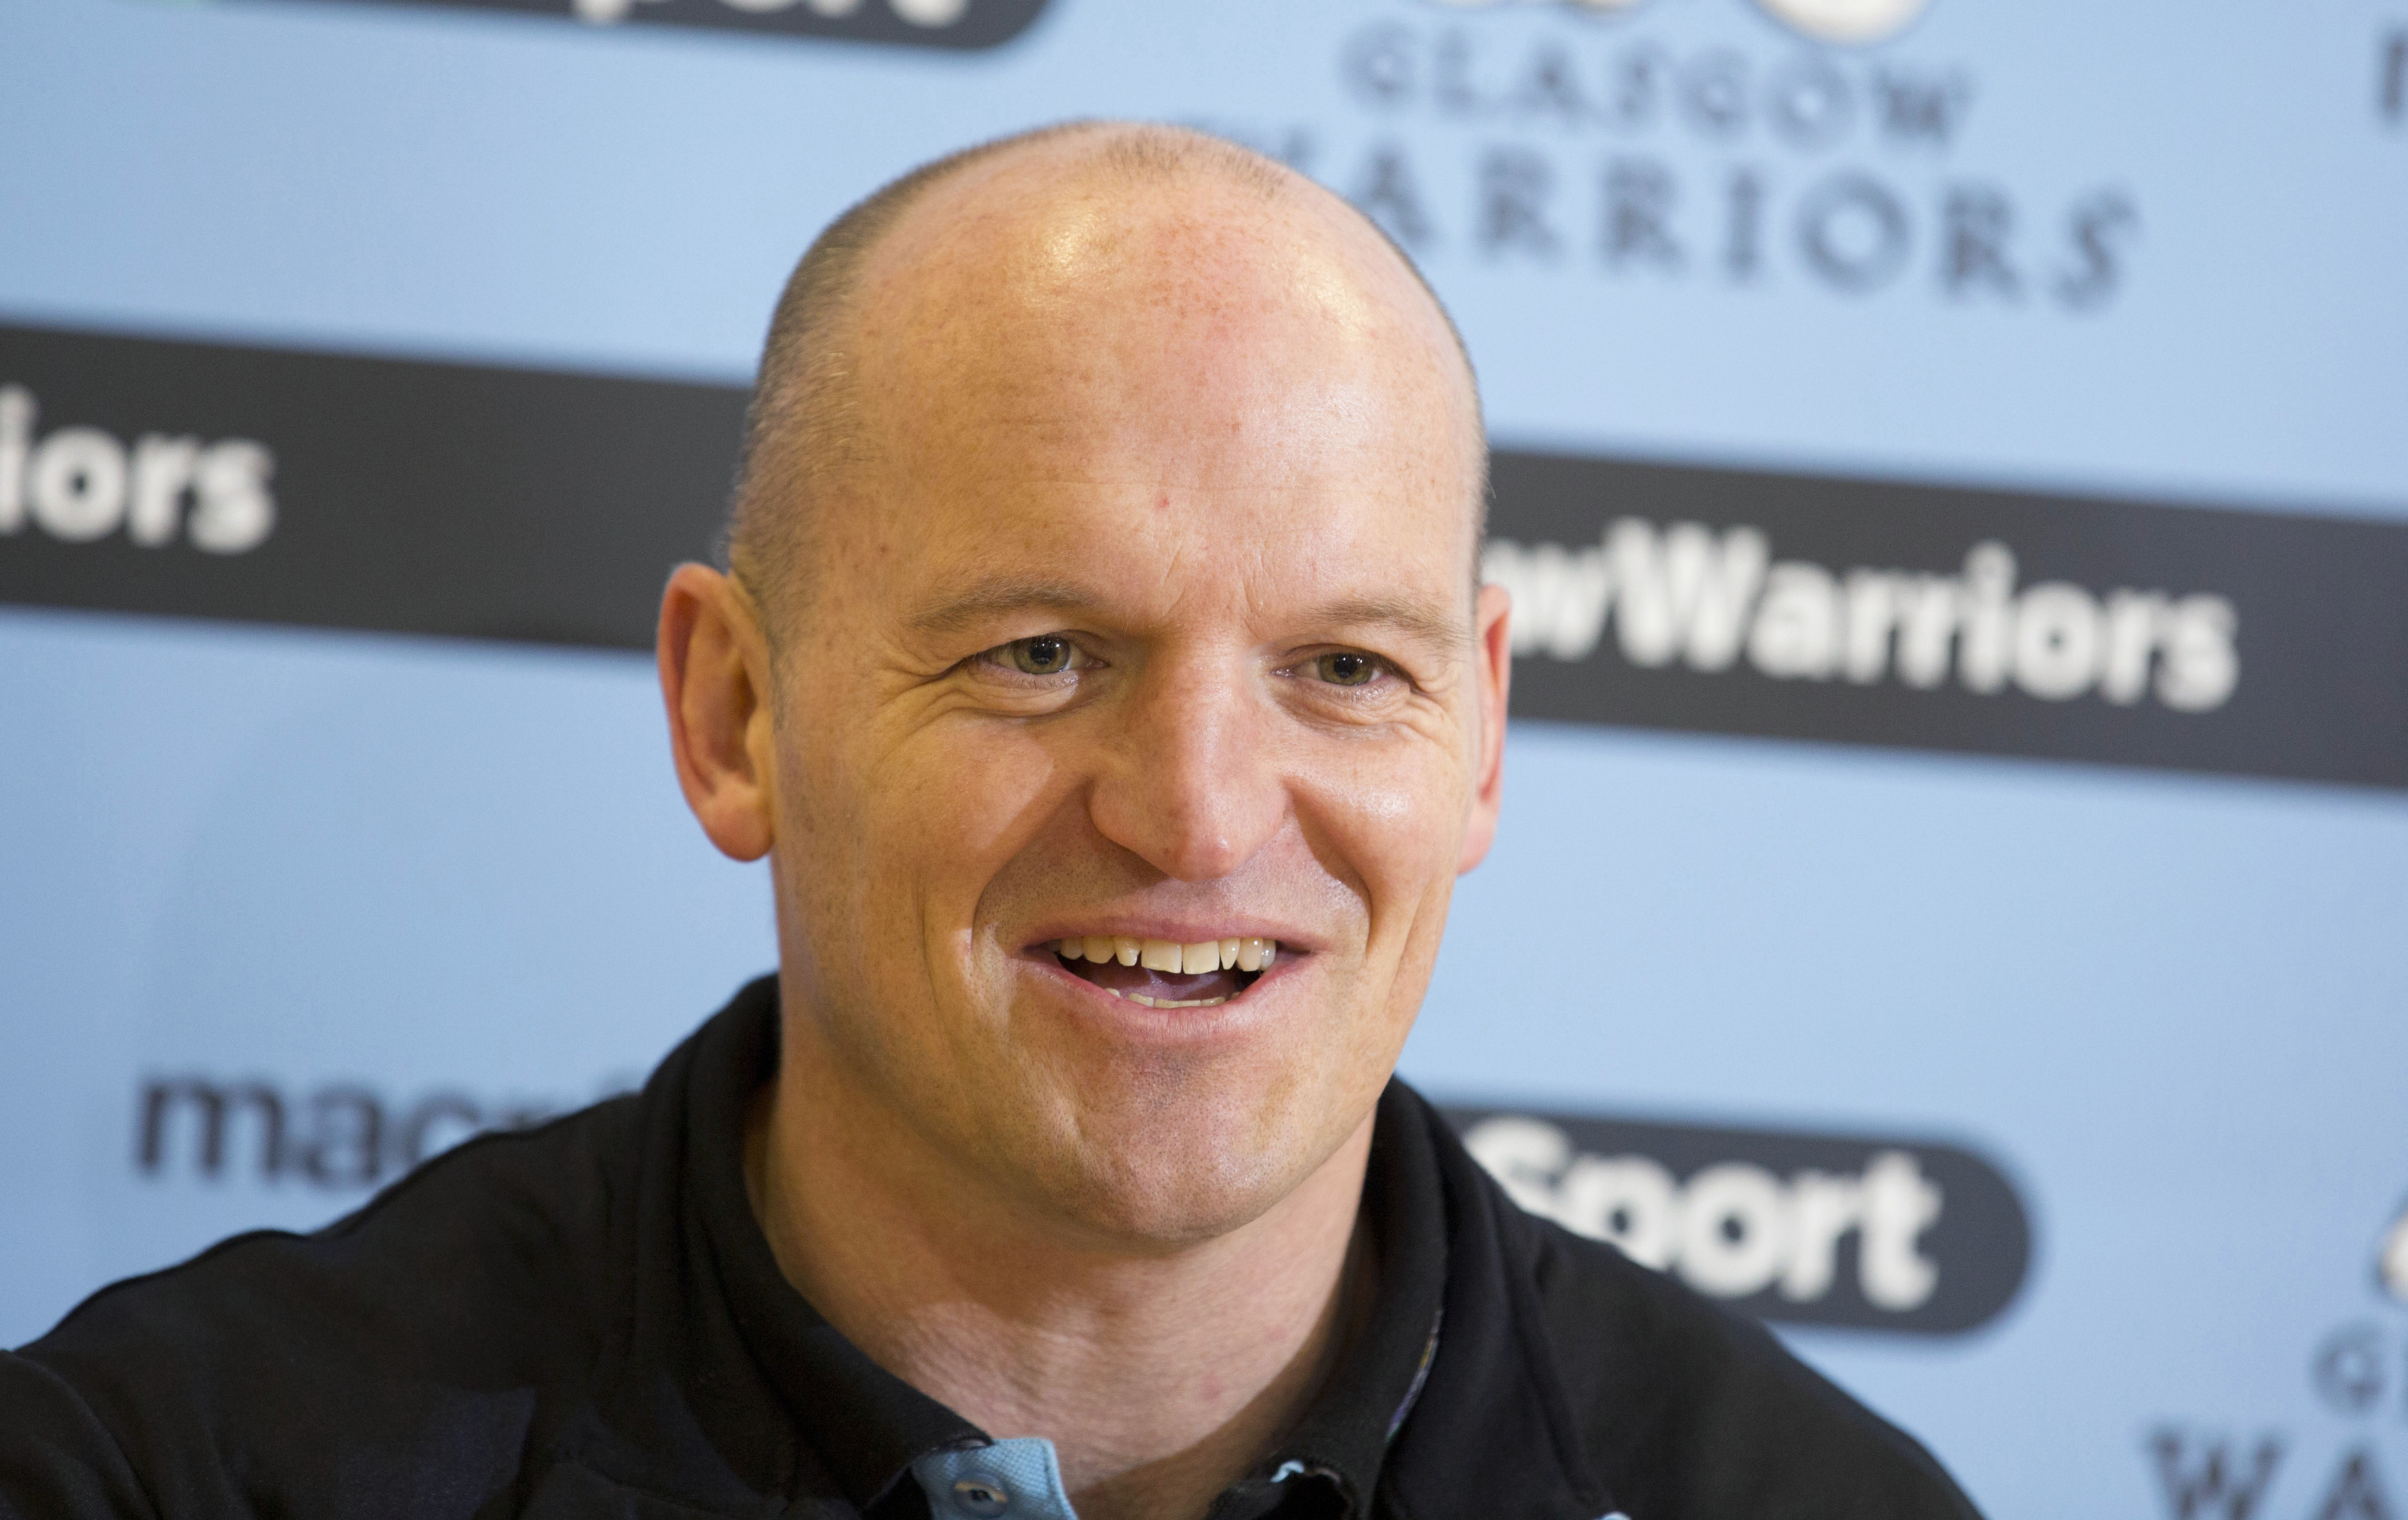 """Gregor Townsend admitted to being """"thrown"""" by the Lions coaching offer before turning it down."""